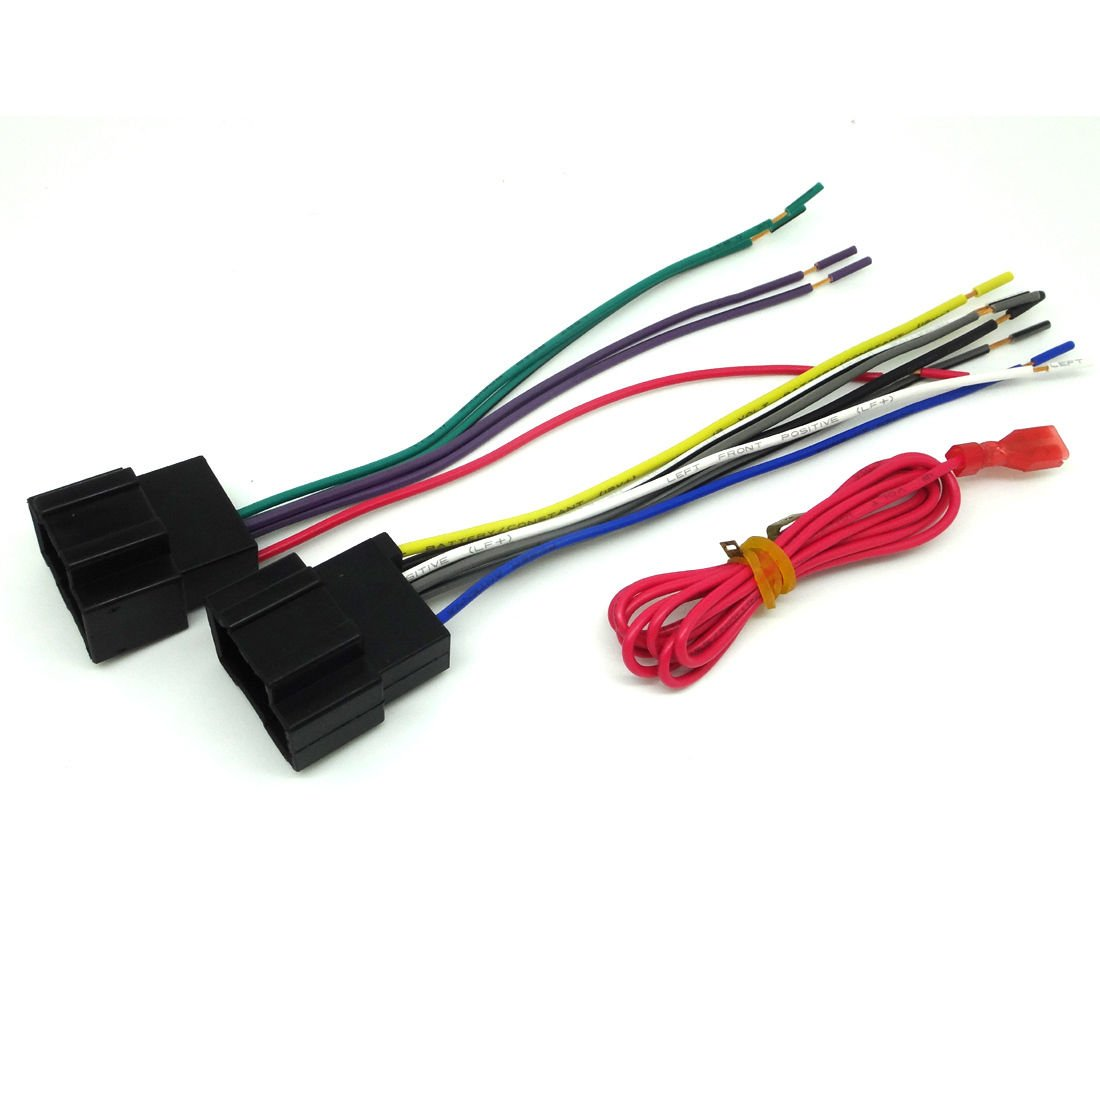 Amazon.com: GM CAR STEREO CD PLAYER WIRING HARNESS WIRE AFTERMARKET ...